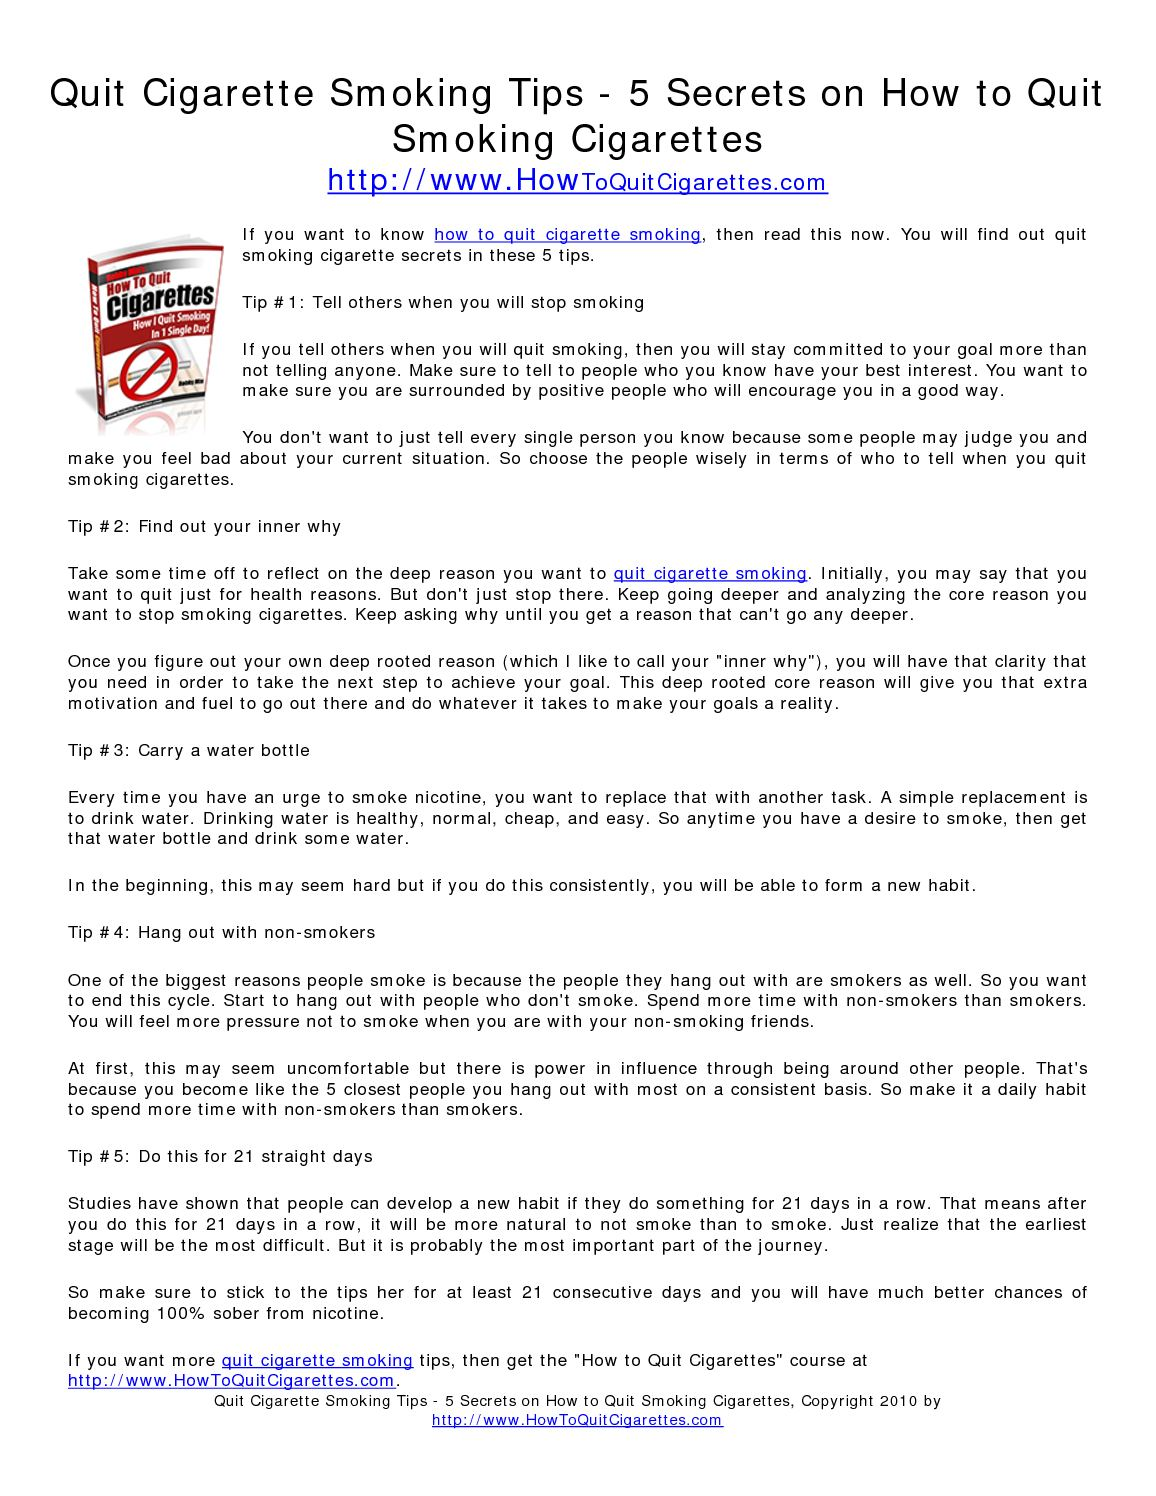 Calaméo - Quit Cigarette Smoking Tips - 5 Secrets on How to